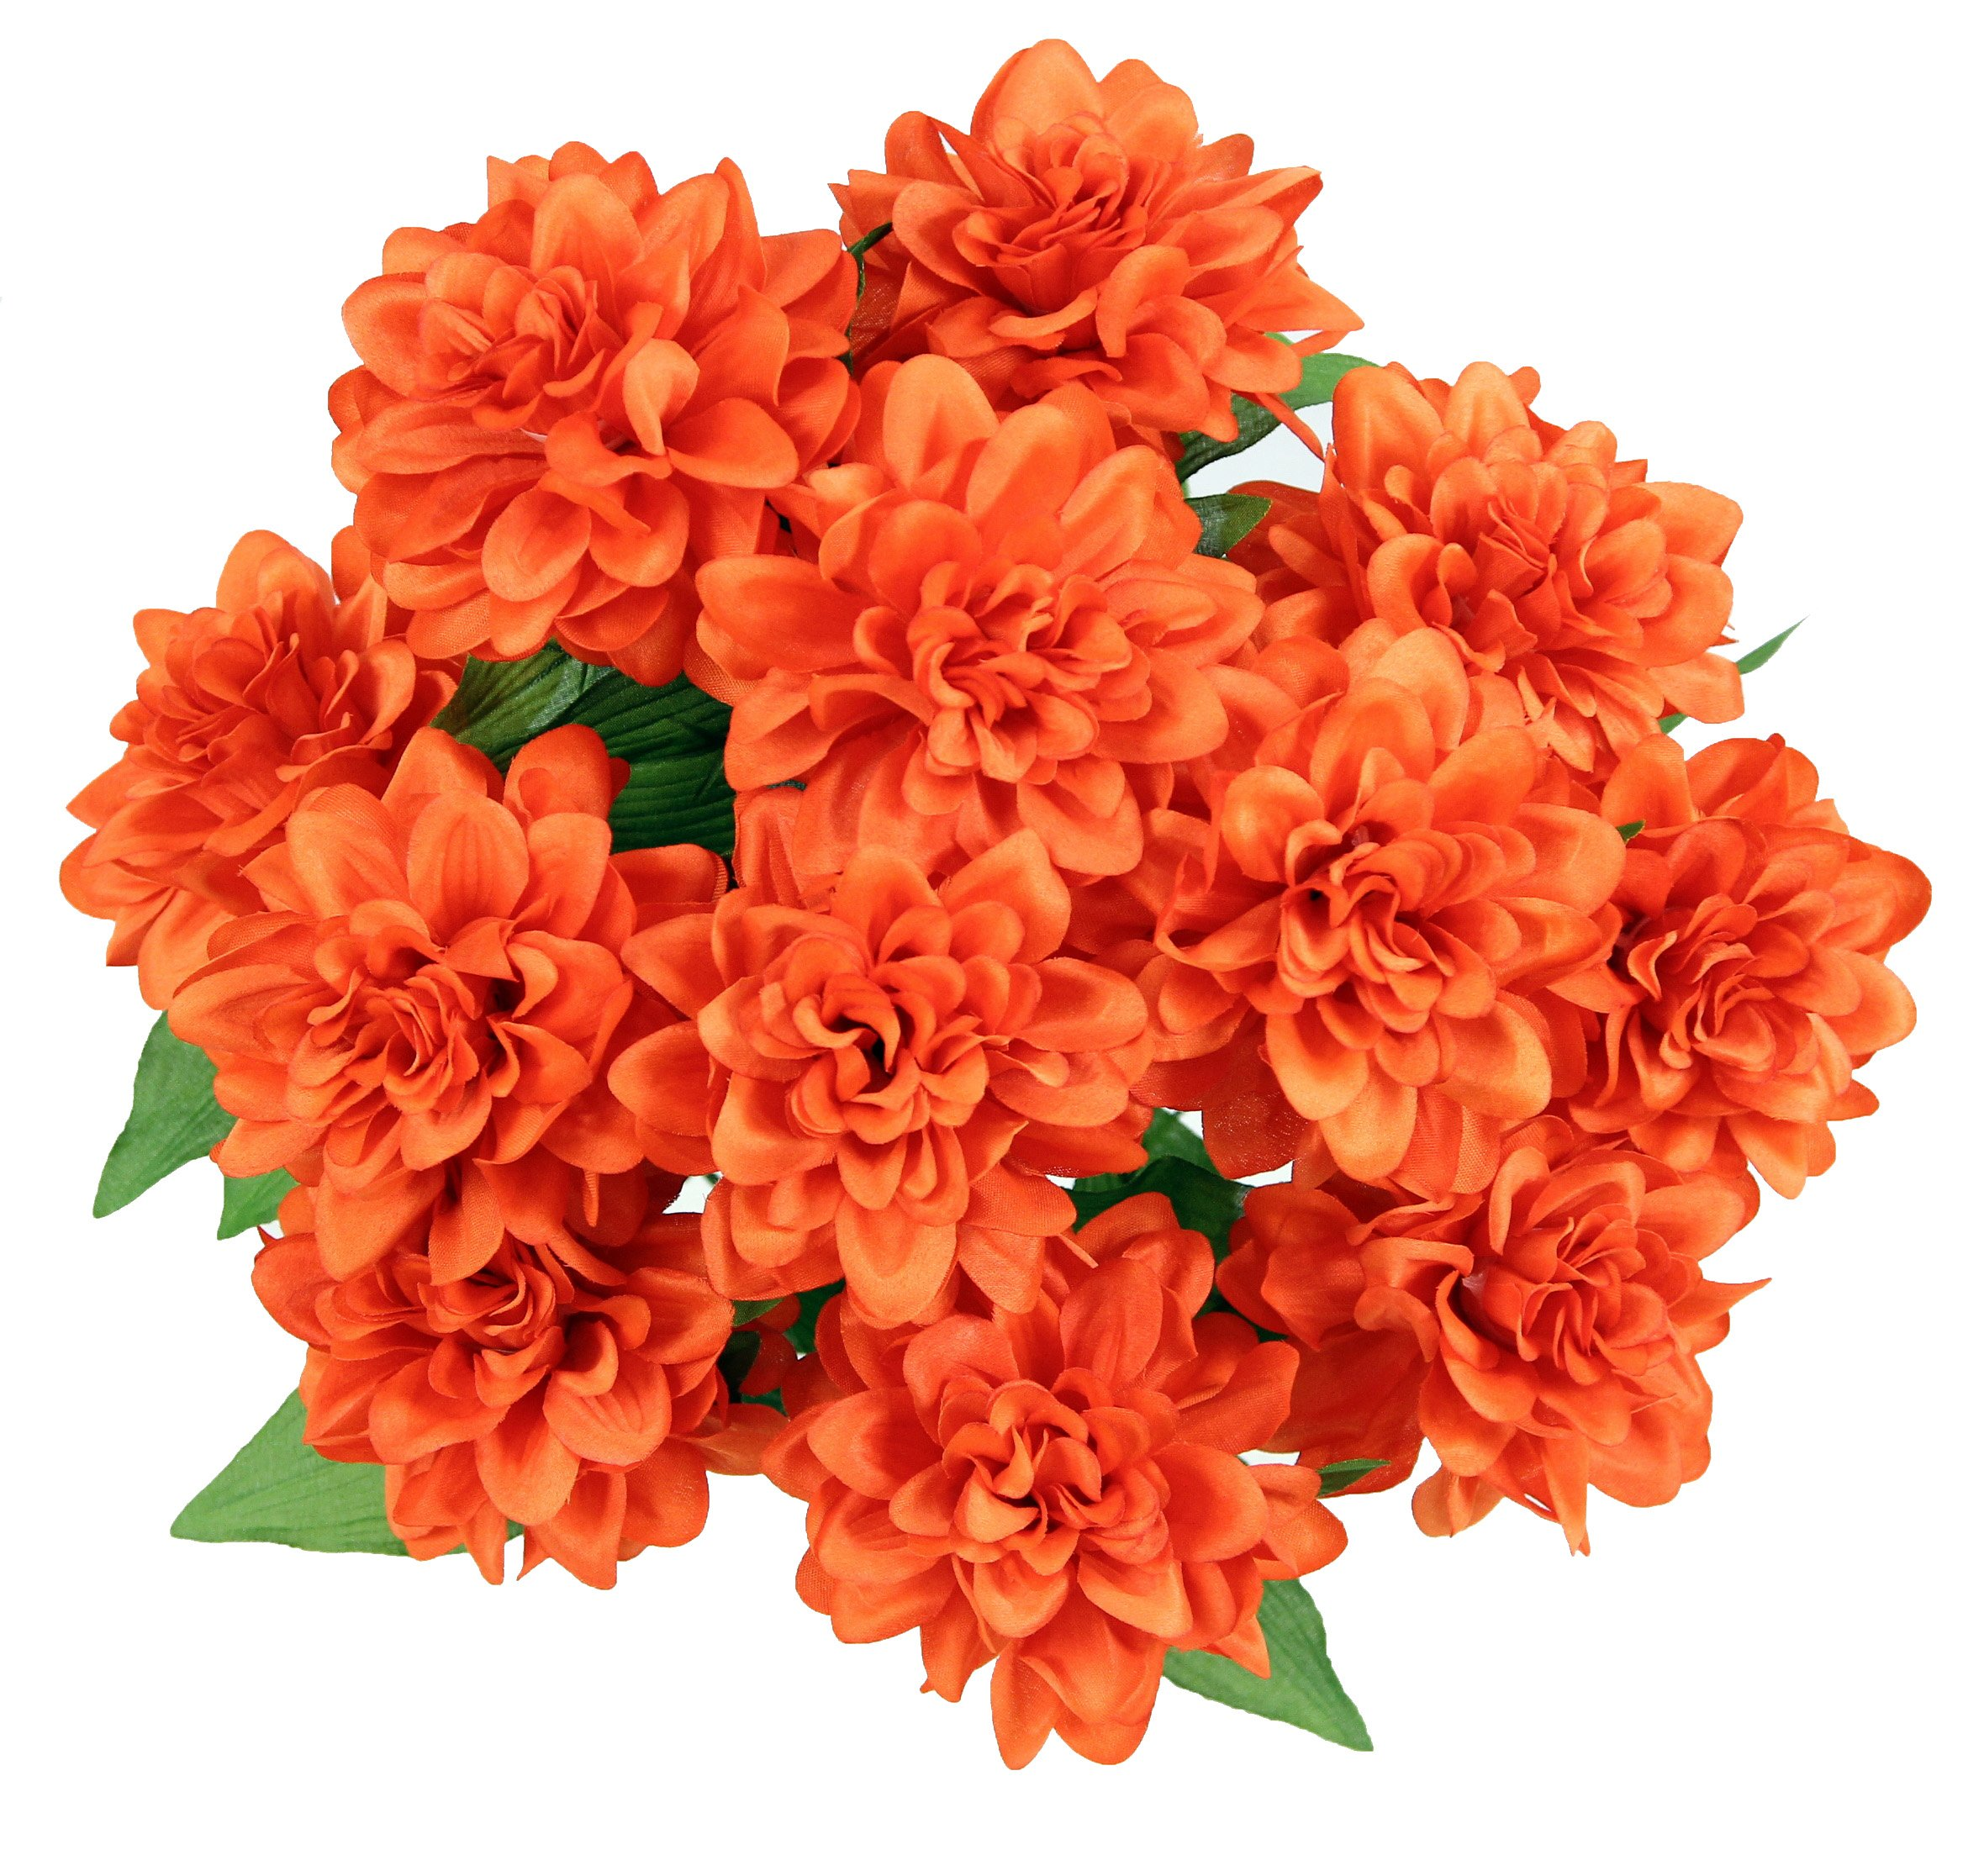 Admired-By-Nature-12-Stems-Artificial-Full-Blooming-Dahlia-for-Mothers-Day-gift-or-Decoration-for-Home-Restaurant-Office-Wedding-Orange-2-Pieces